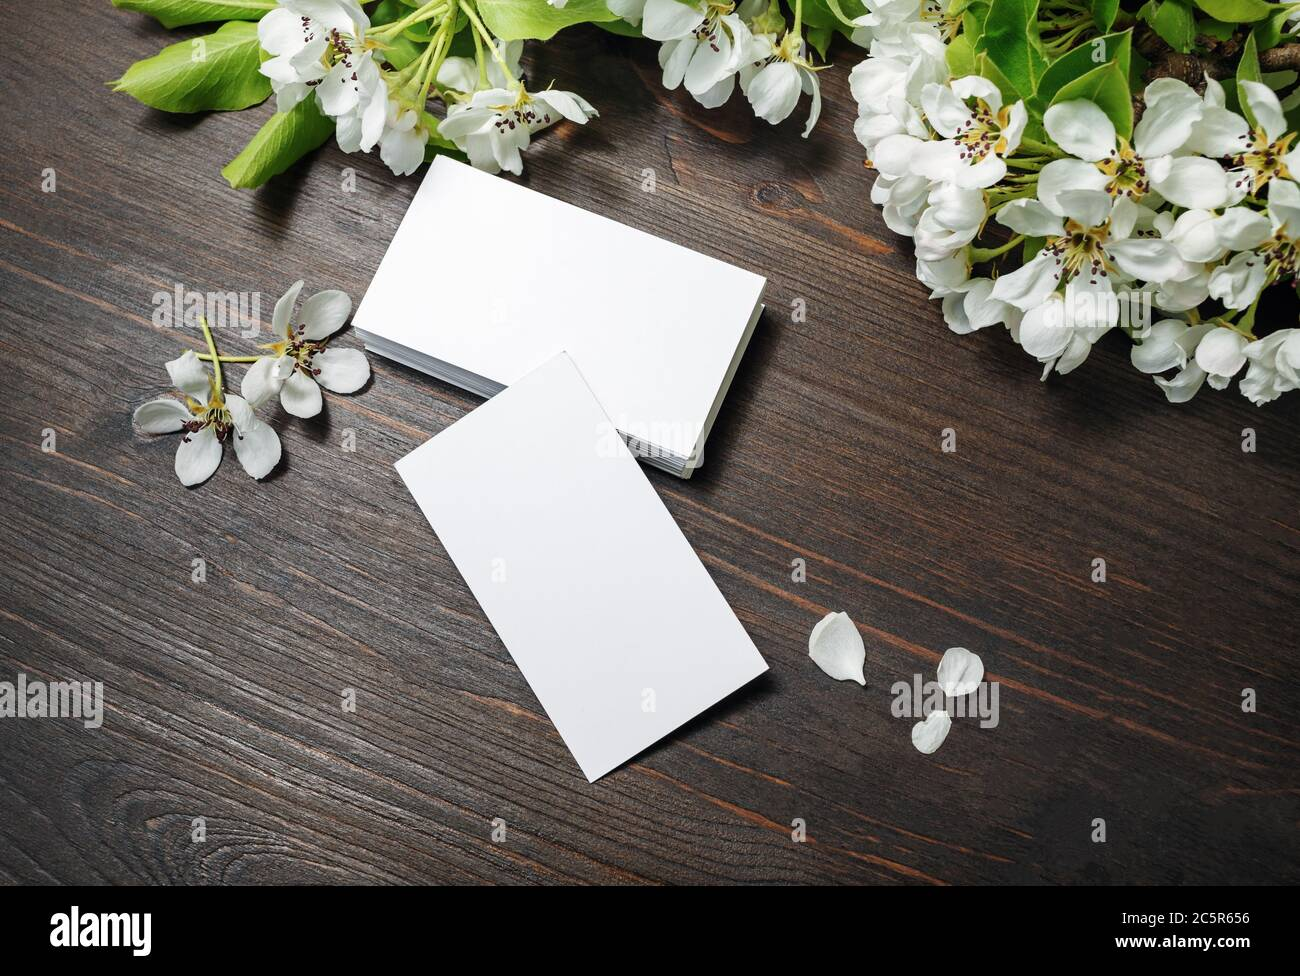 Photo Of Blank Business Cards And Flowers On Wooden Background Template For Id Stock Photo Alamy